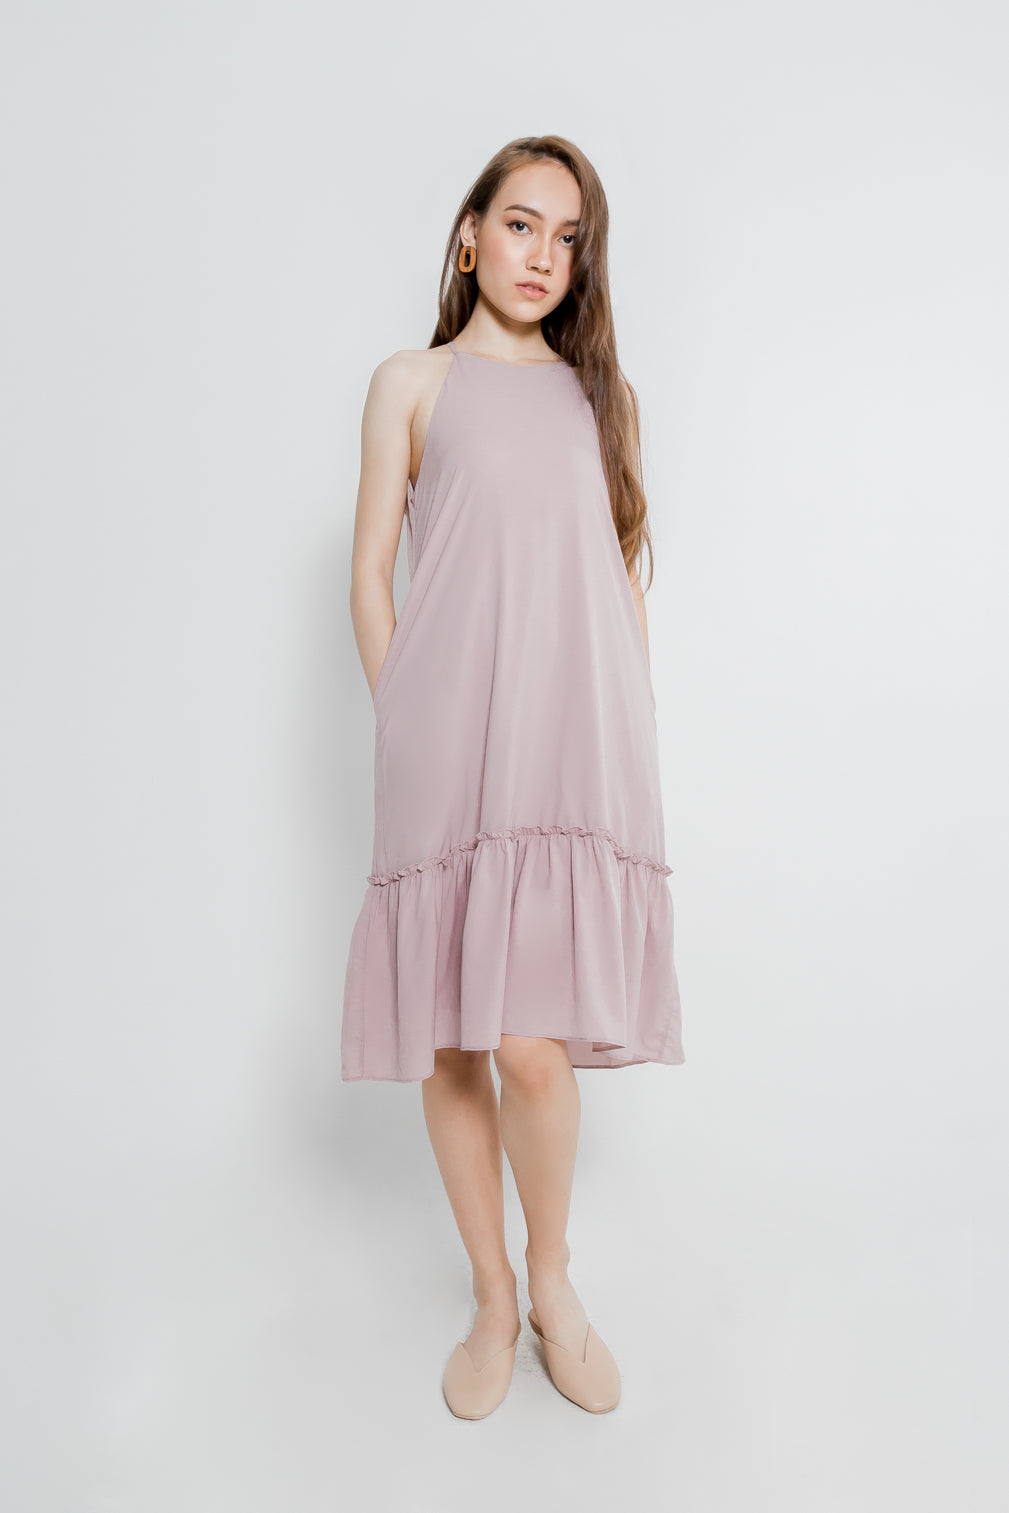 CUT IN RUFFLE HEM MIDI DRESS (DUSTY PINK)